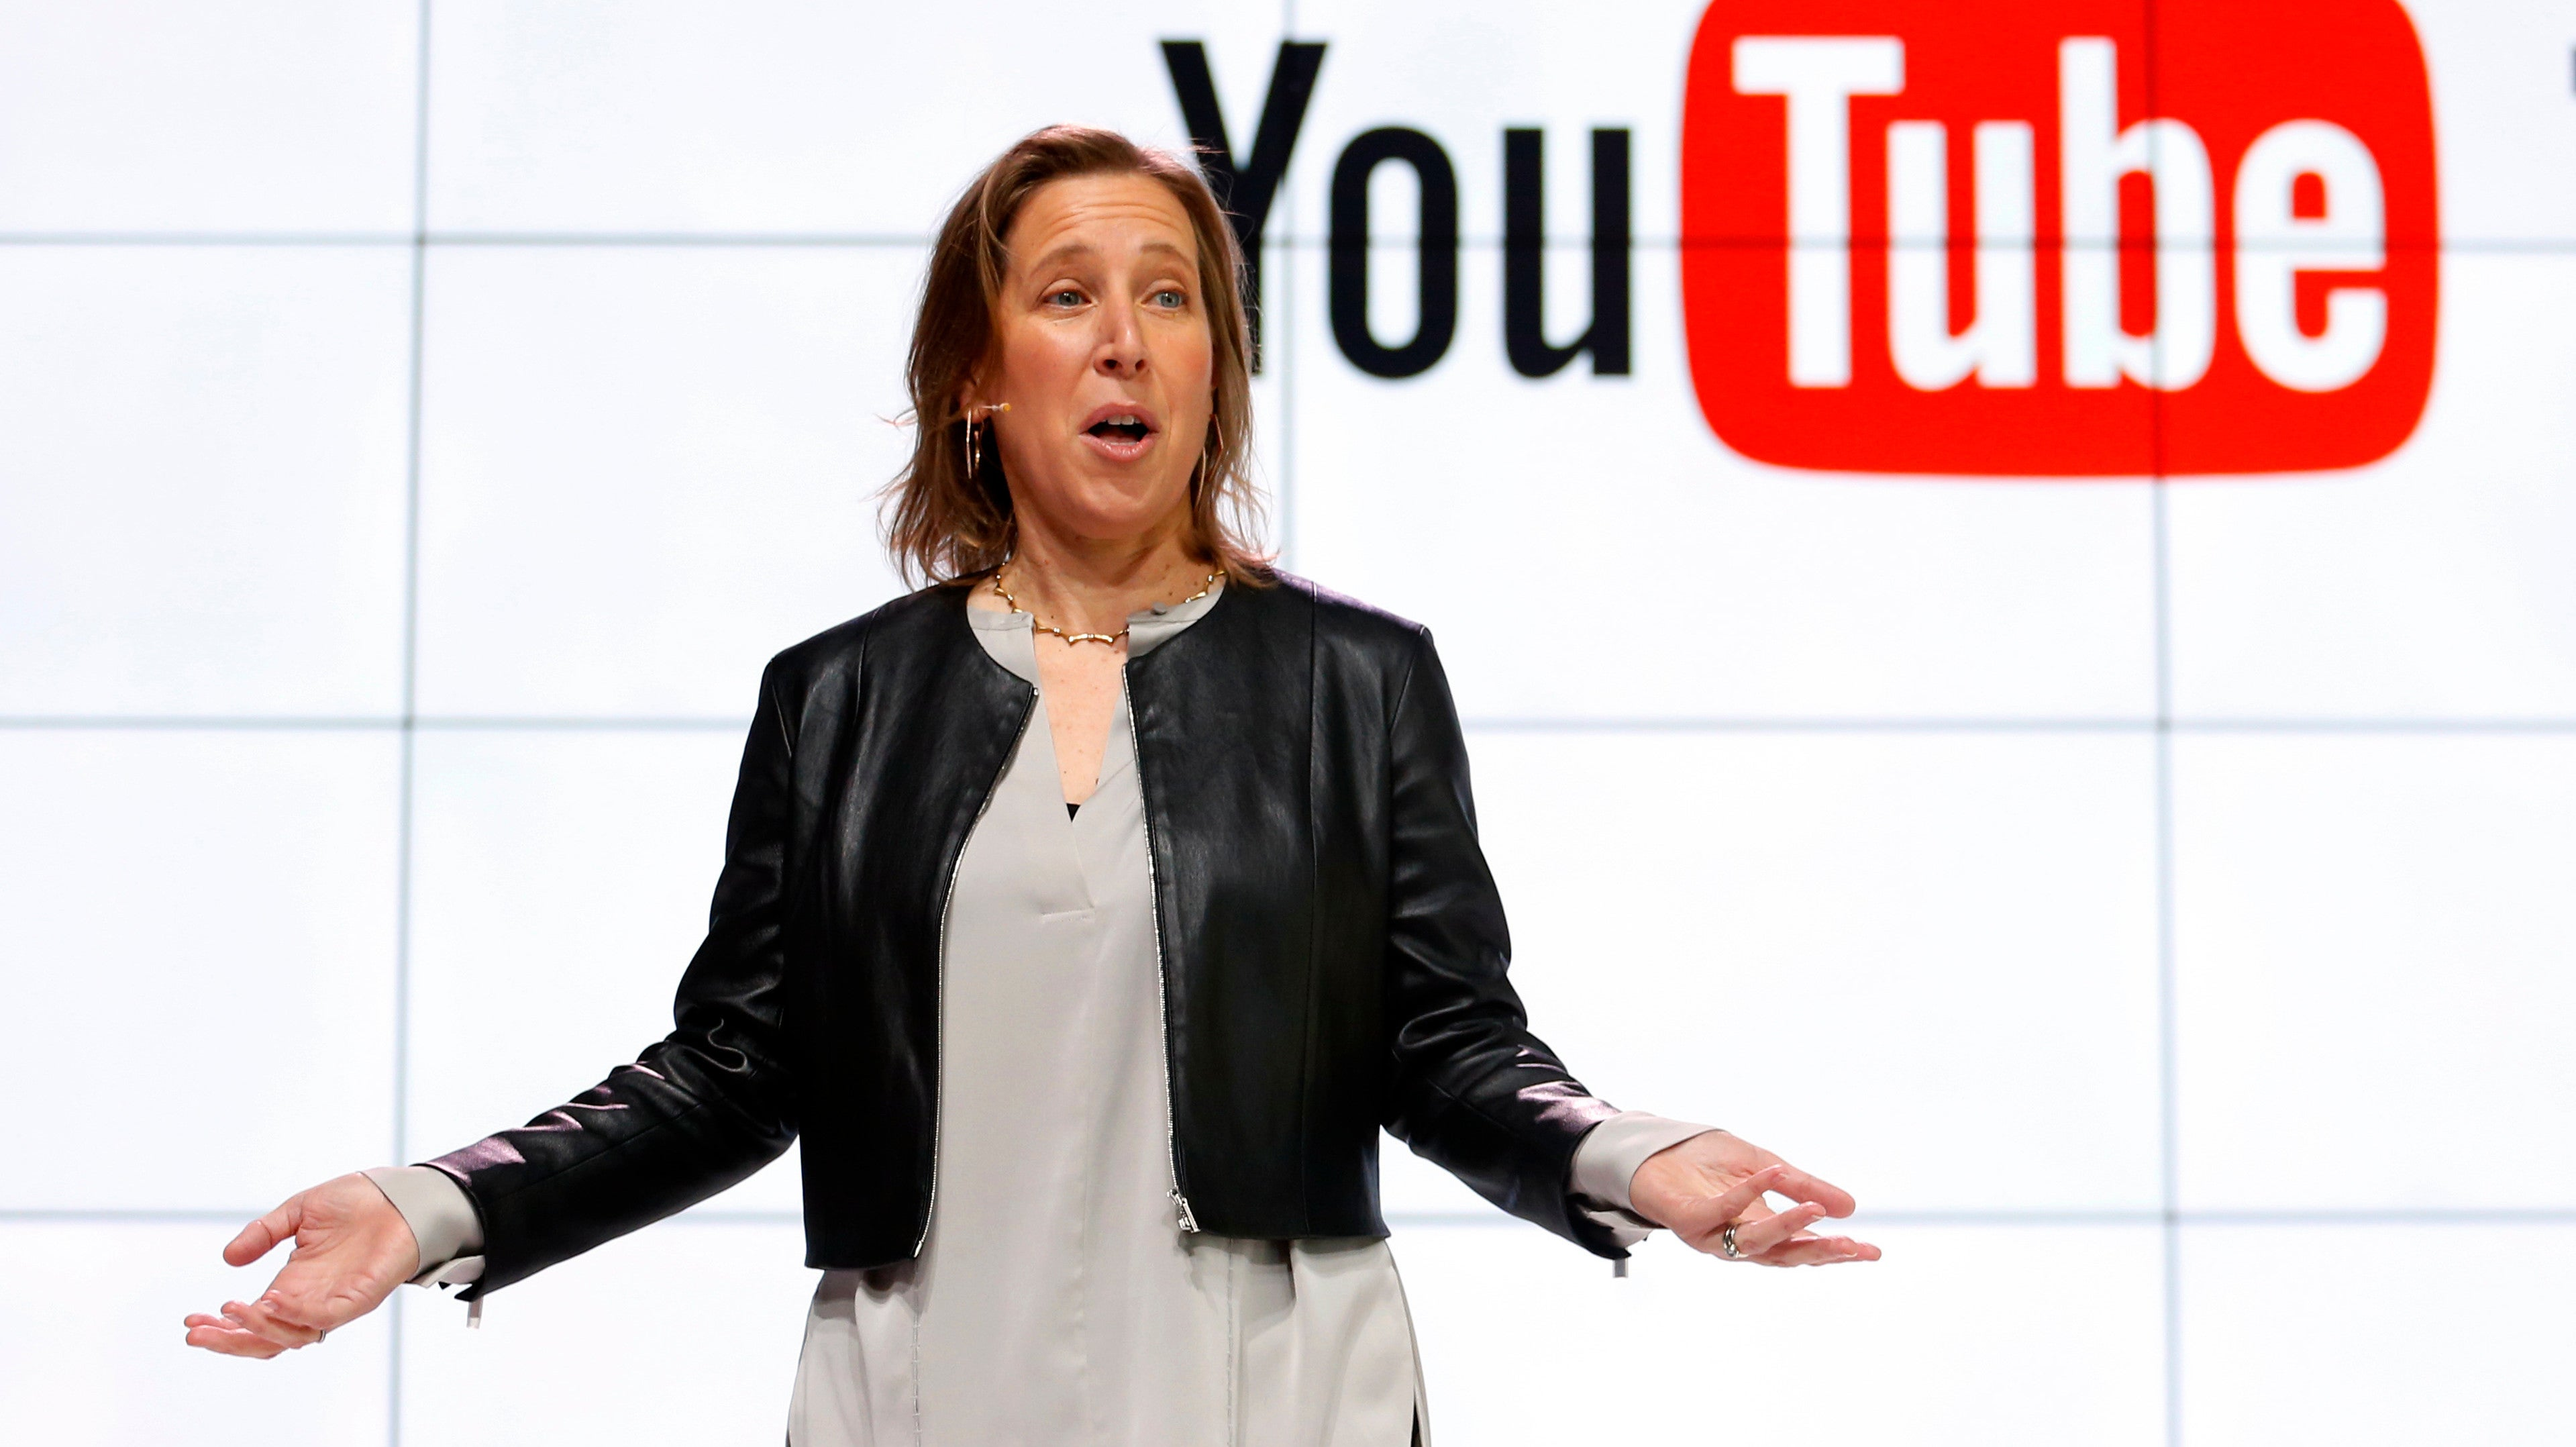 YouTube Faces Angry Mob Again, CEO Promises To Rethink New Verification Policy